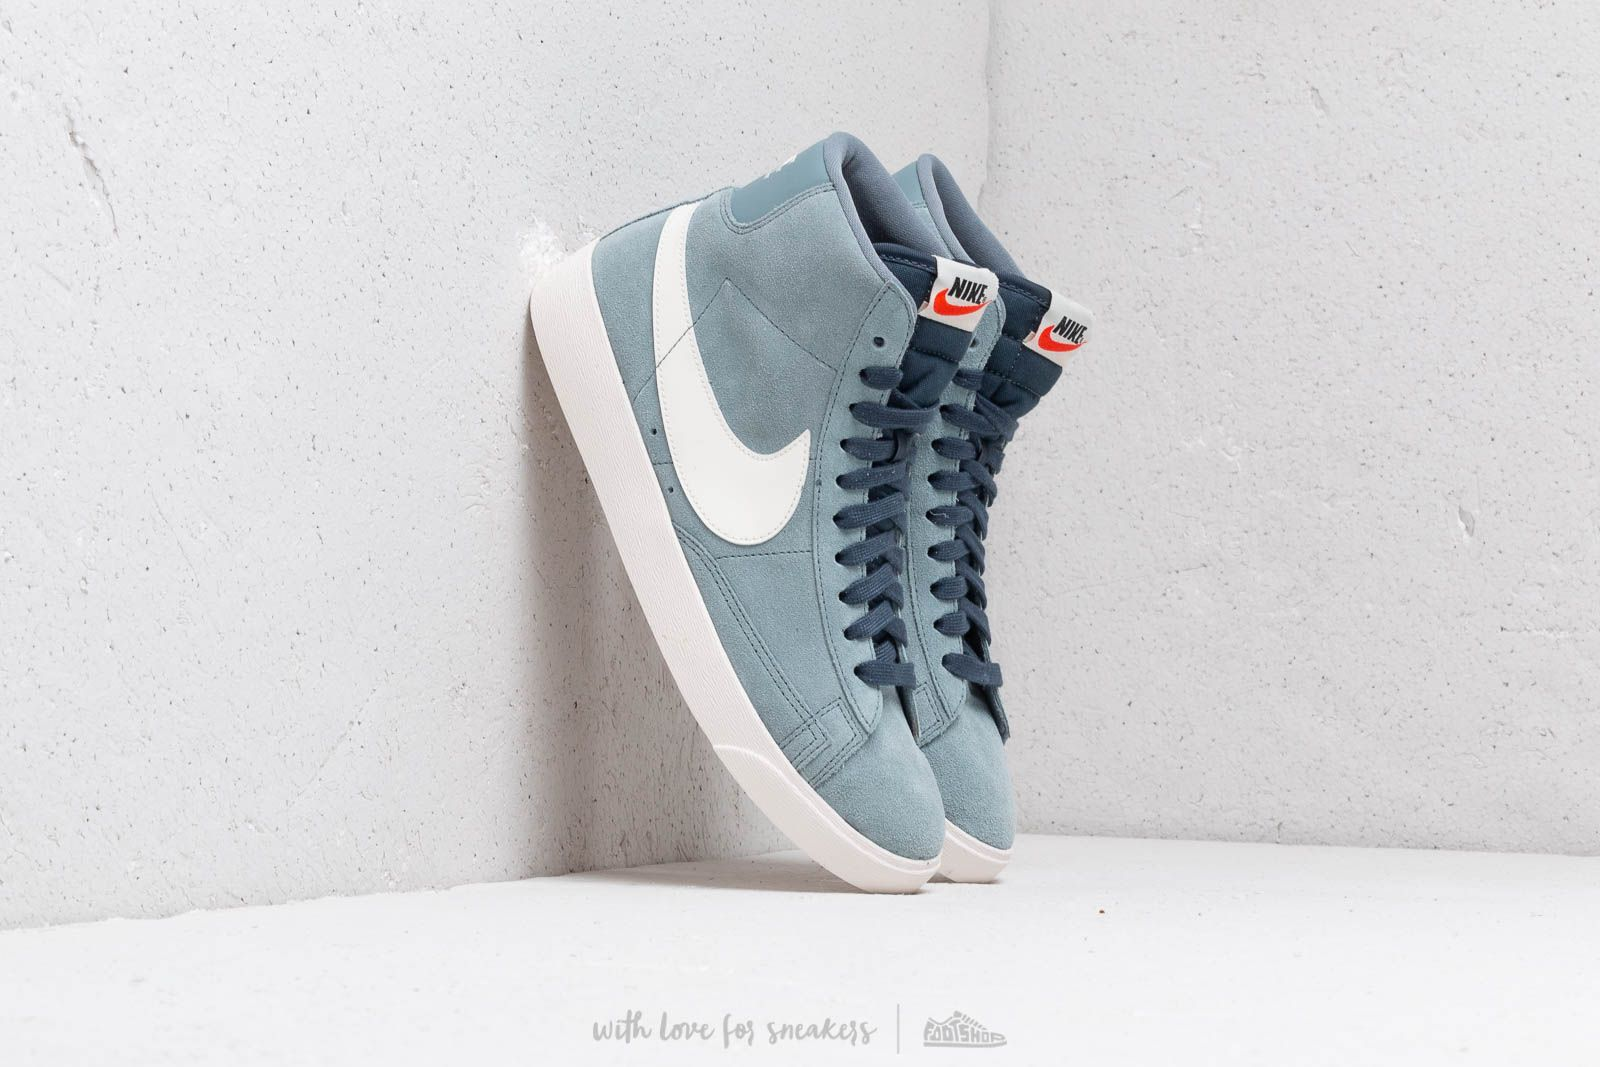 official photos 67a40 a6a76 Nike W Blazer Mid Vintage Suede Aviator Grey  Sail-Monsoon Blue at a great